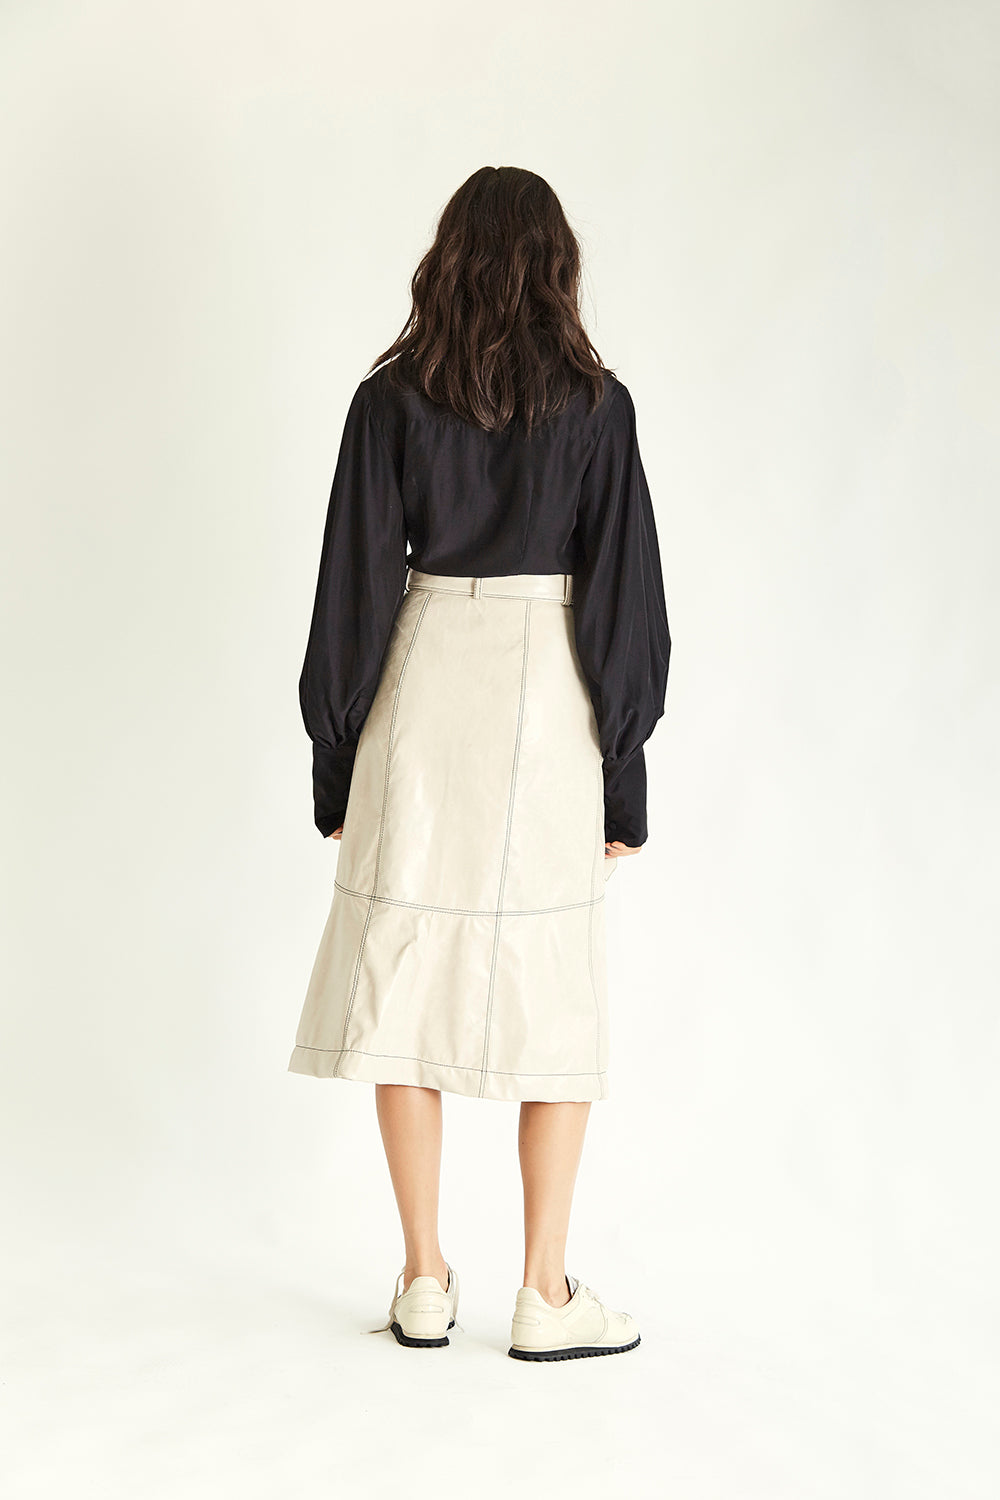 Dakota Leather Skirt - Cream - Wynn Hamlyn — Shop